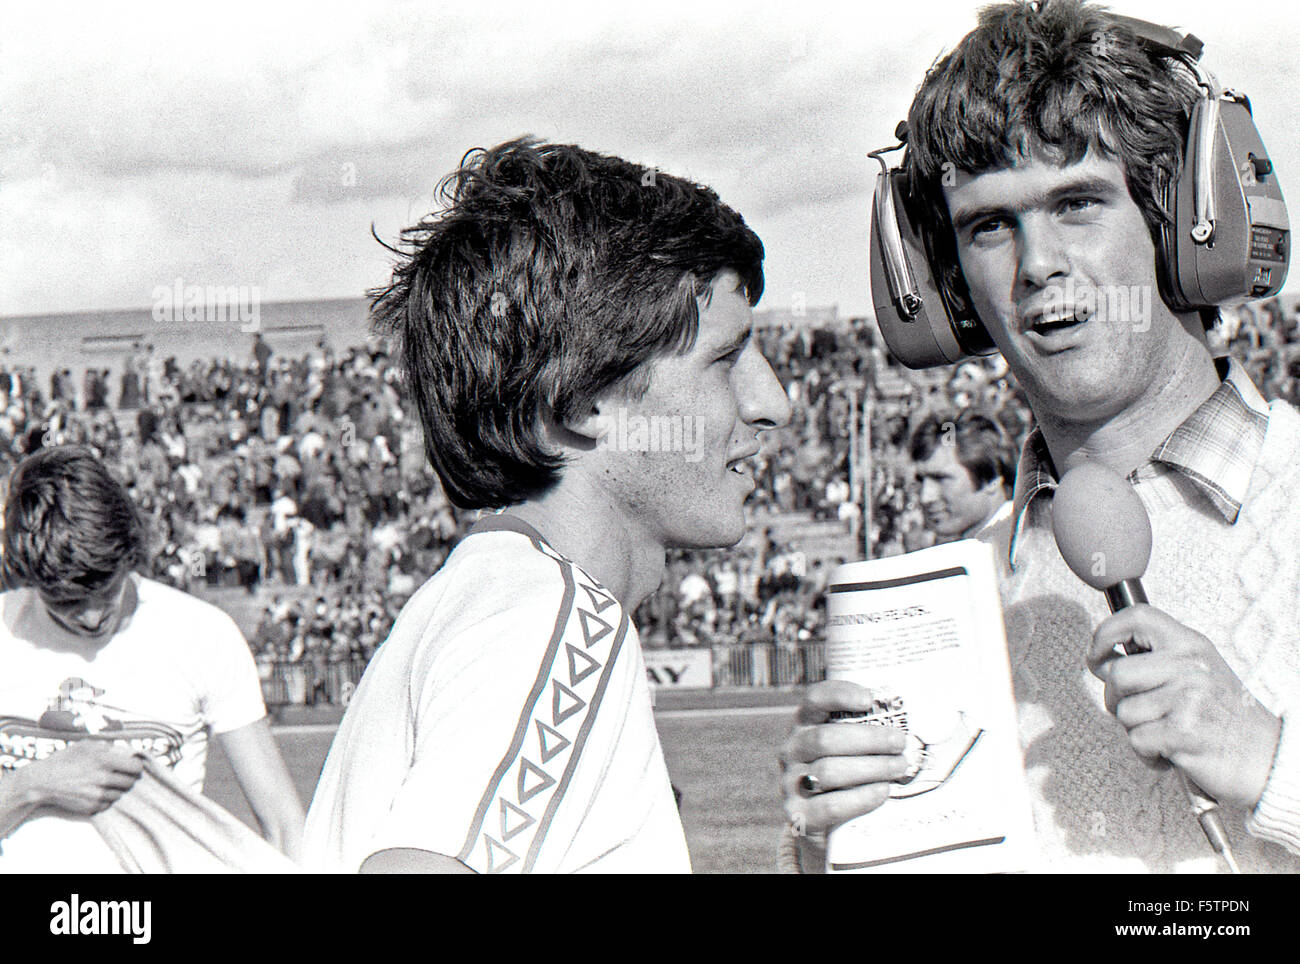 Sebastian Coe being interviewed at the Gateshead Mcewan Games in the 1970's - Stock Image